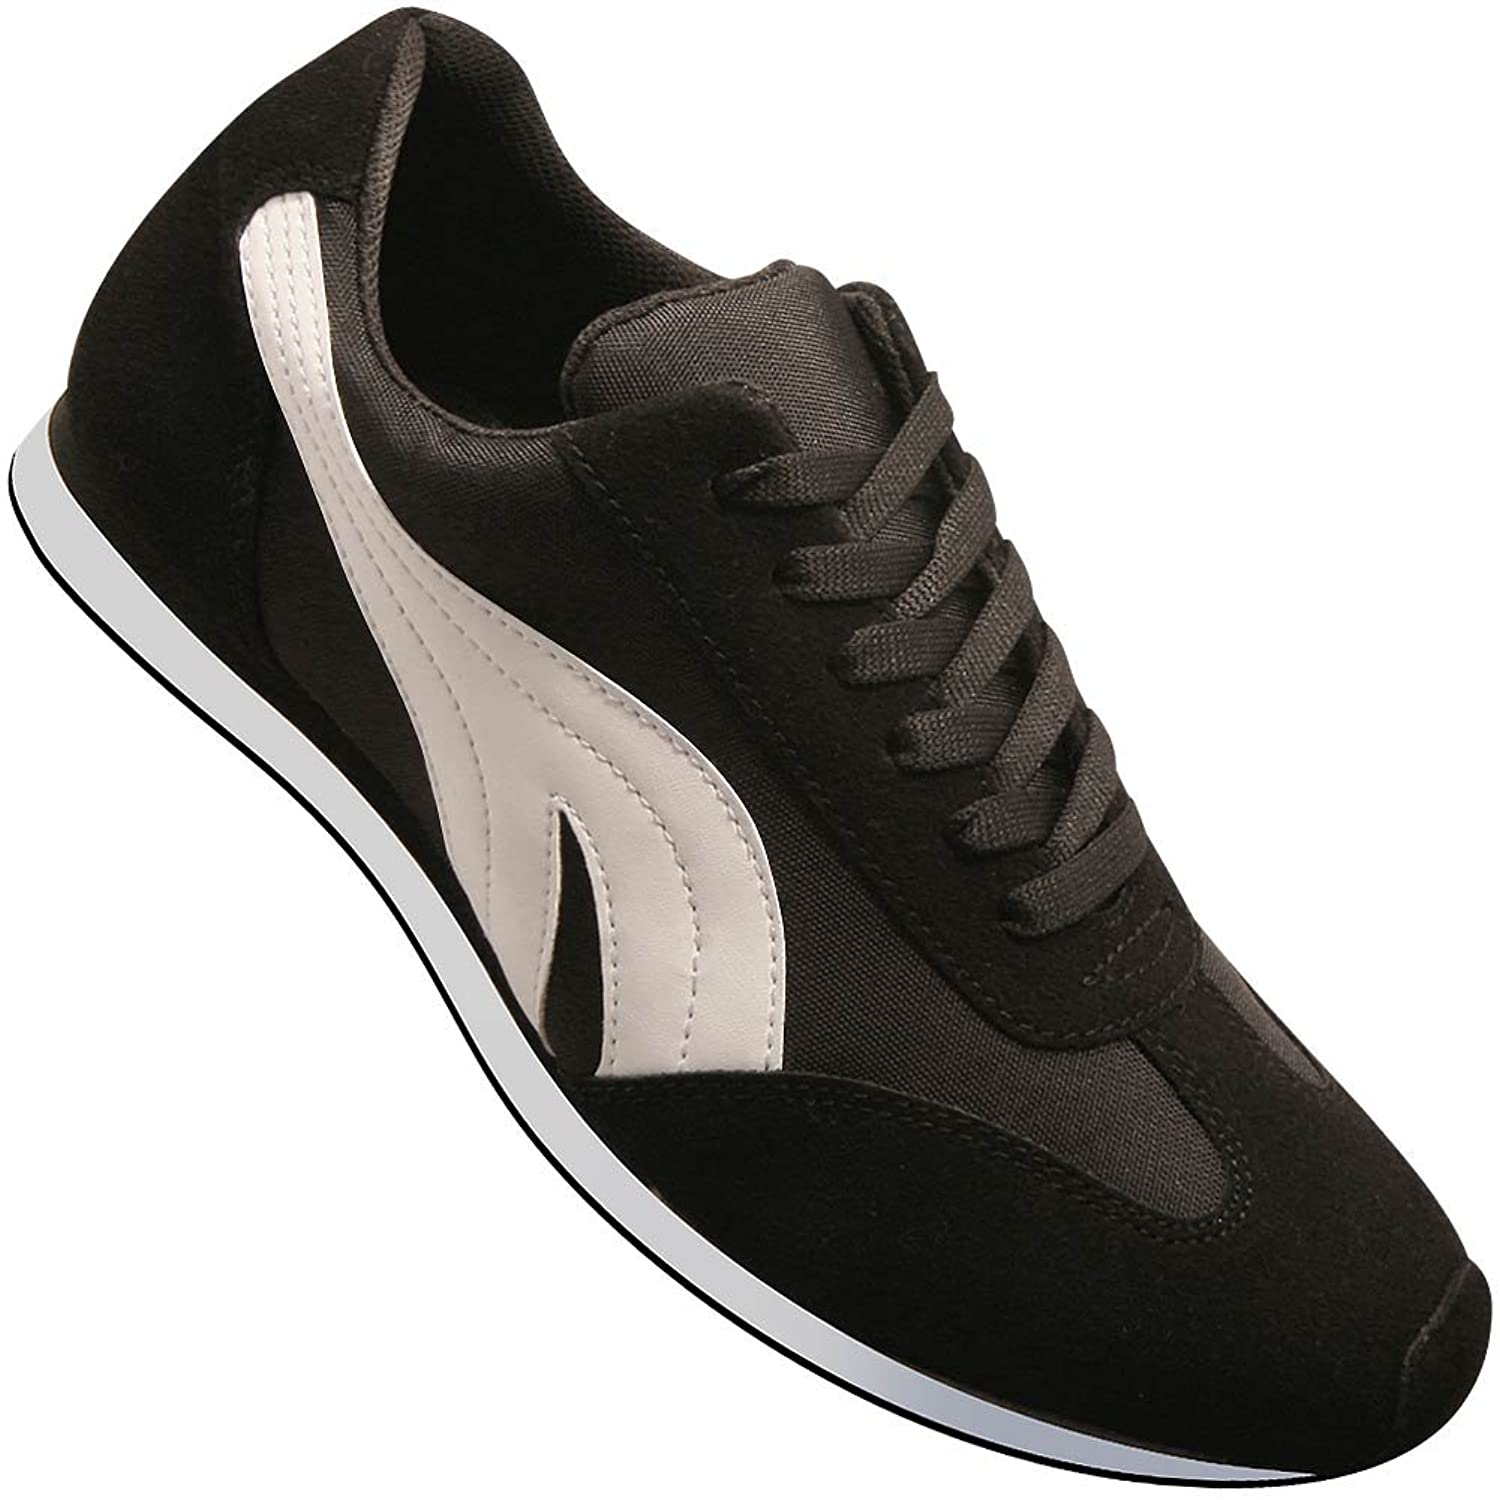 1950s Style Mens Shoes Aris Allen Mens Retro Runner Dance Sneaker in Black and White $59.95 AT vintagedancer.com